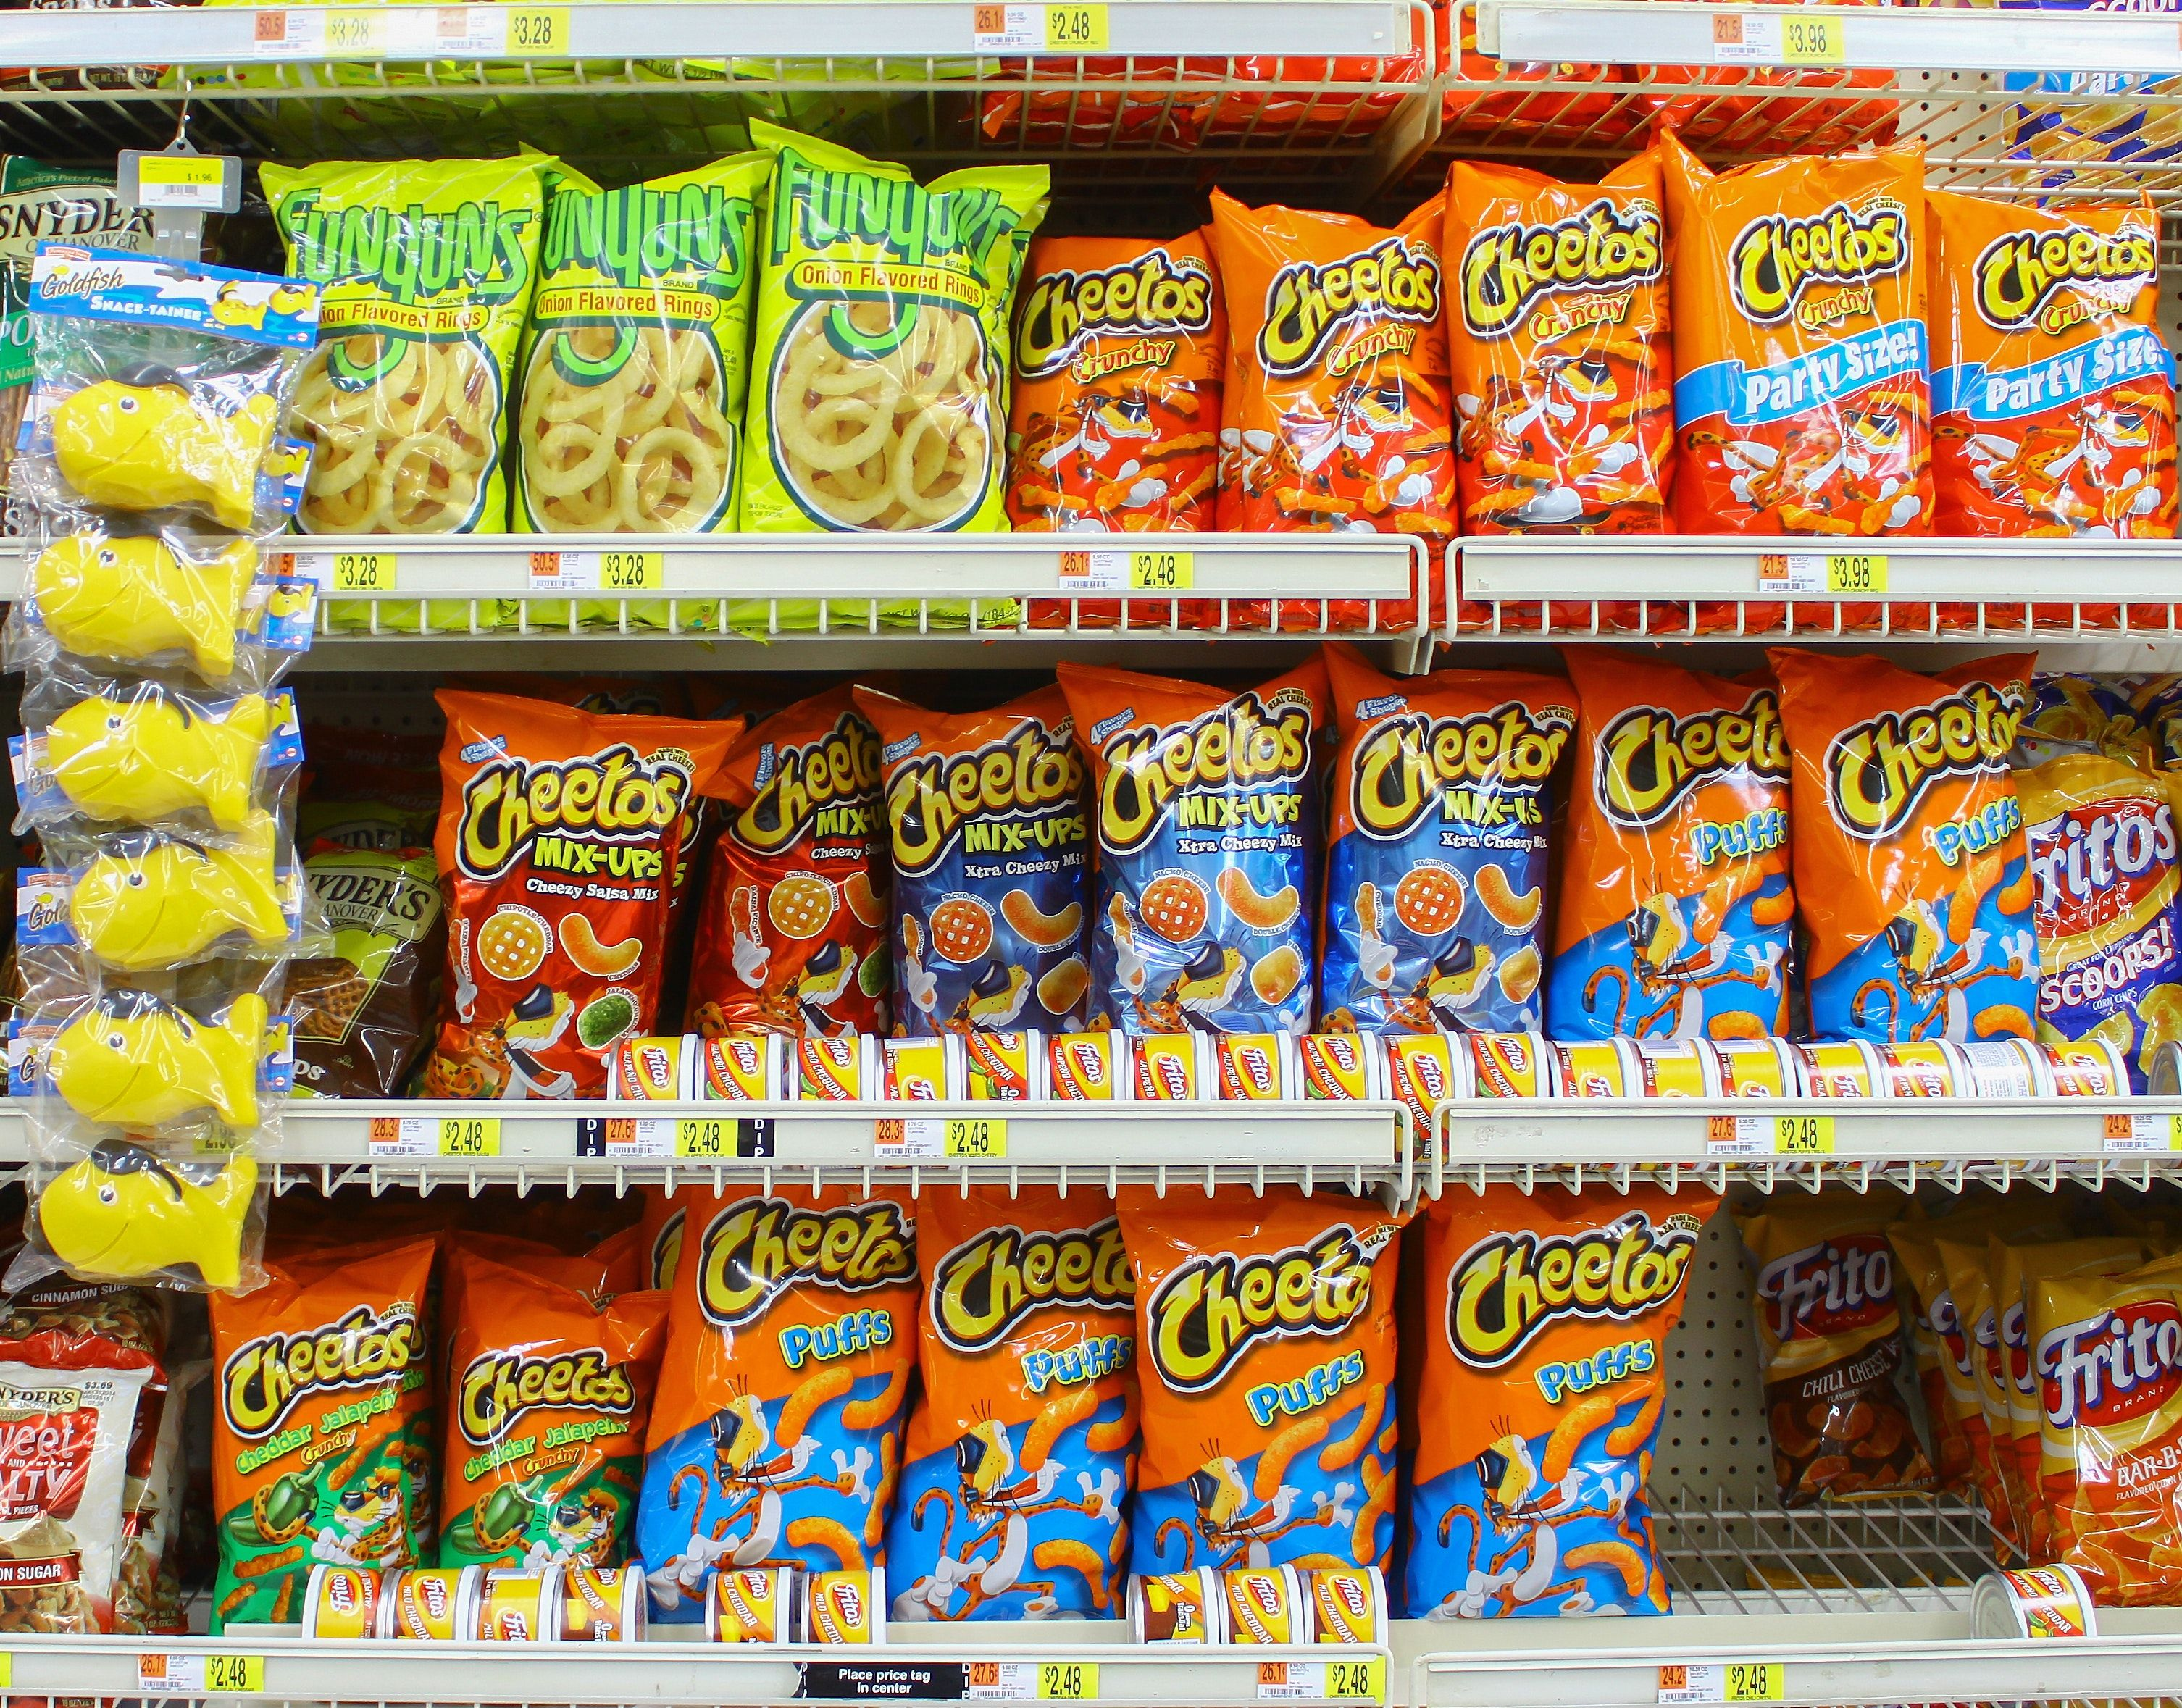 Cheetos has had just about enough of copycat brand peatos